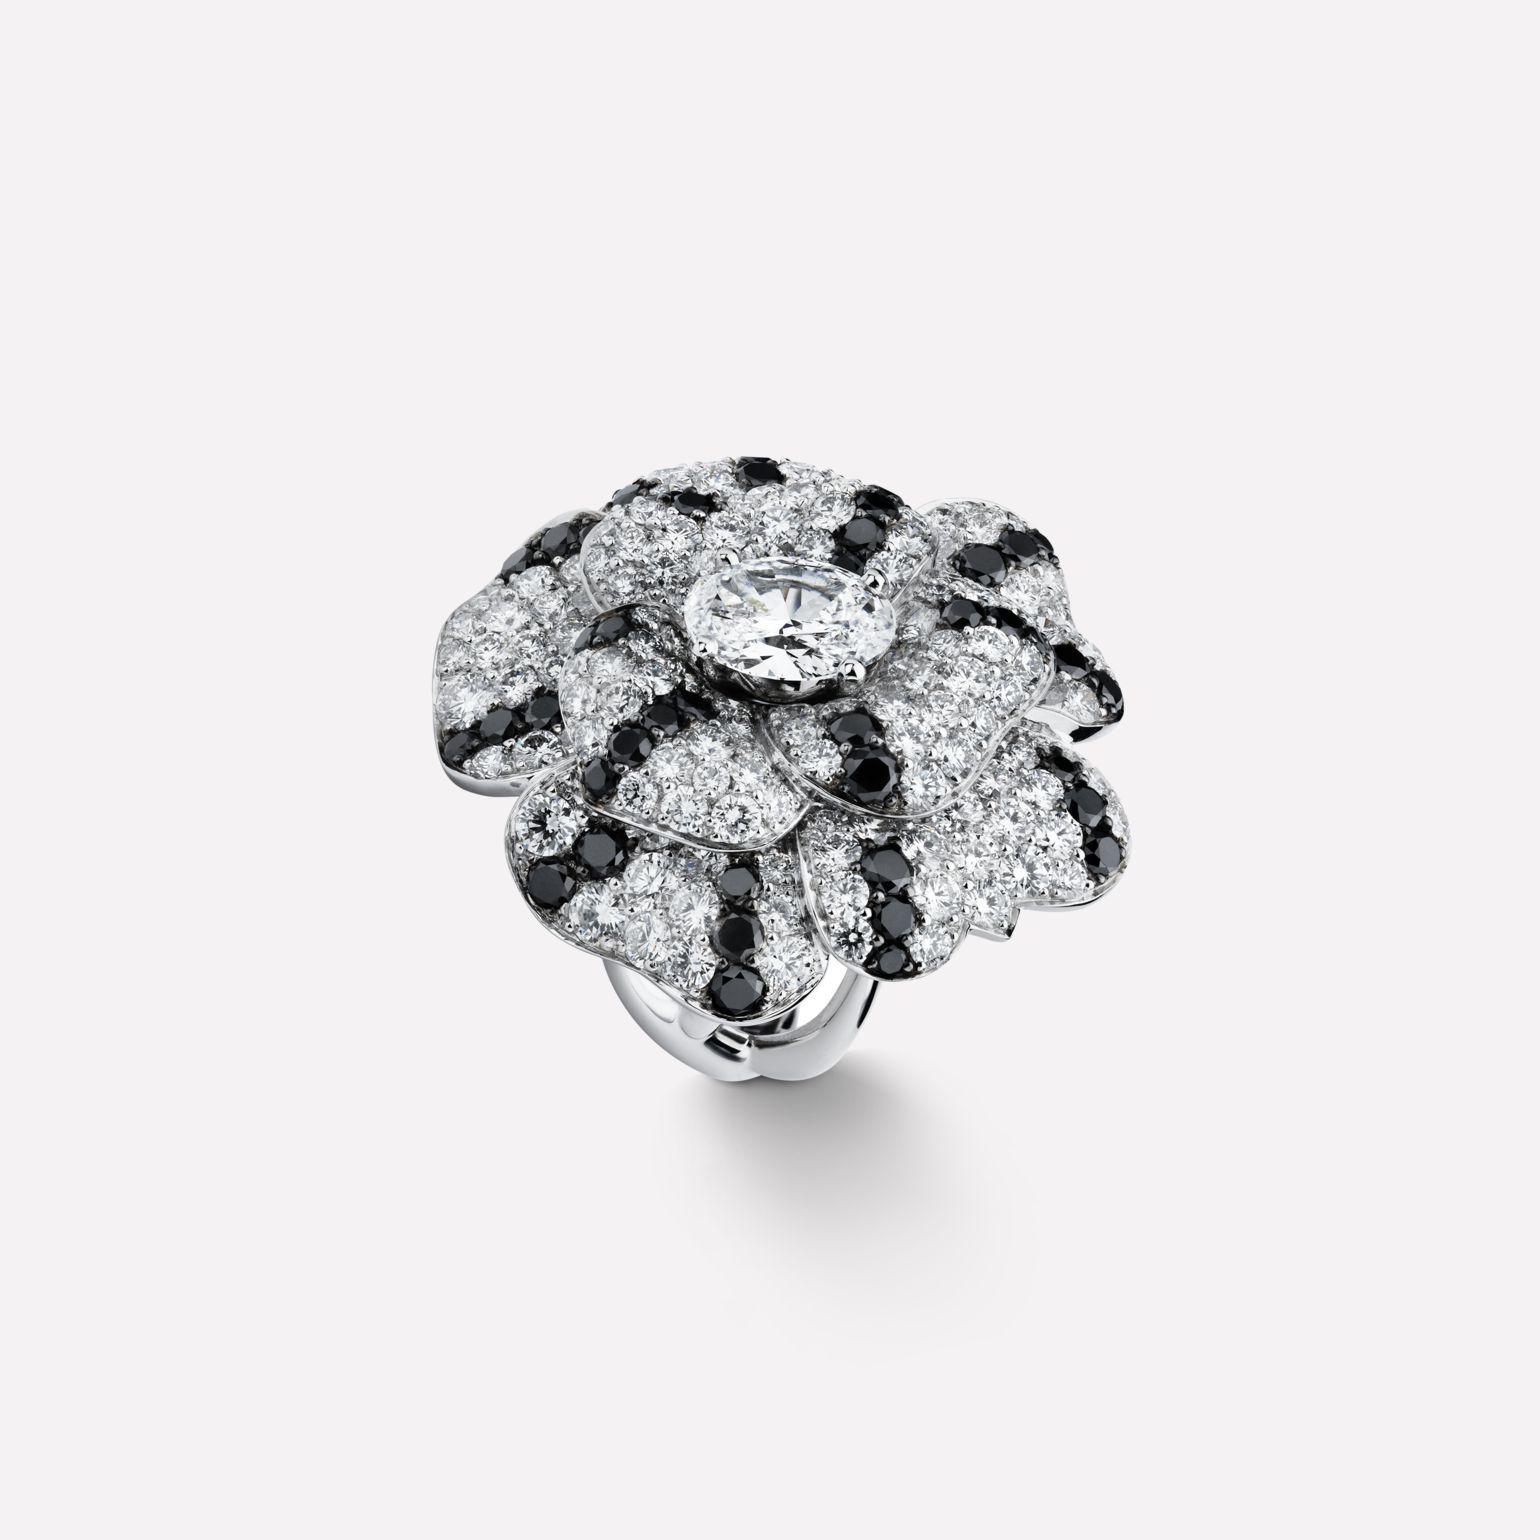 ae277297b3fd3d Camélia ring - Pétales de Camélia ring in 18K white gold and black diamonds  with one center diamond J2979 at the CHANEL Fine Jewelry website.